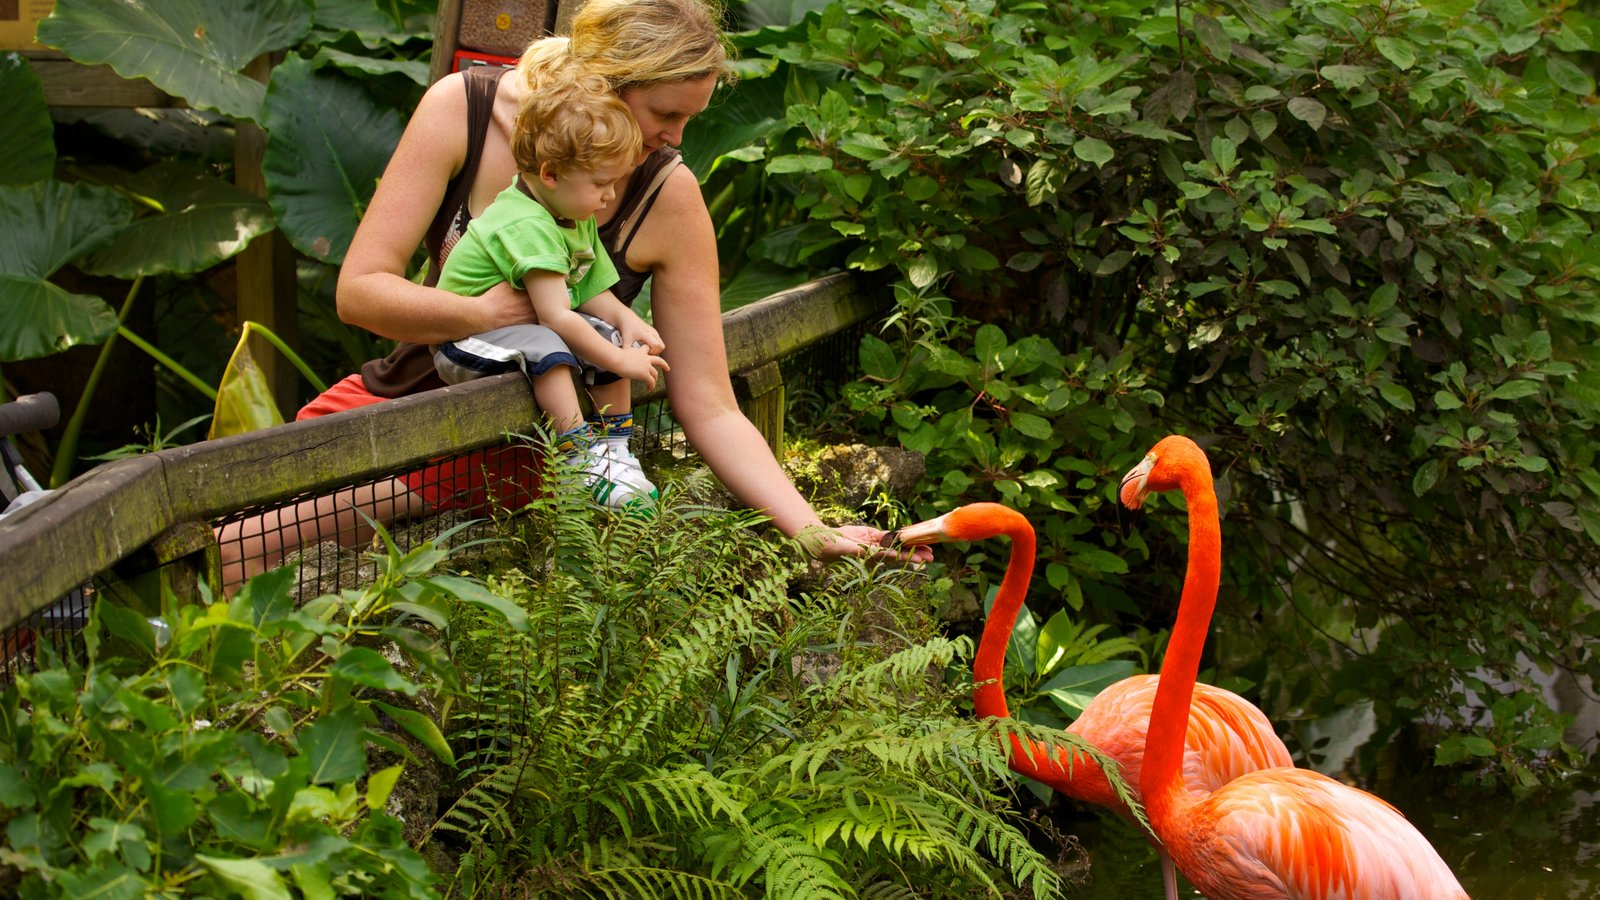 Flamingo Gardens featuring bird life and zoo animals as well as a family